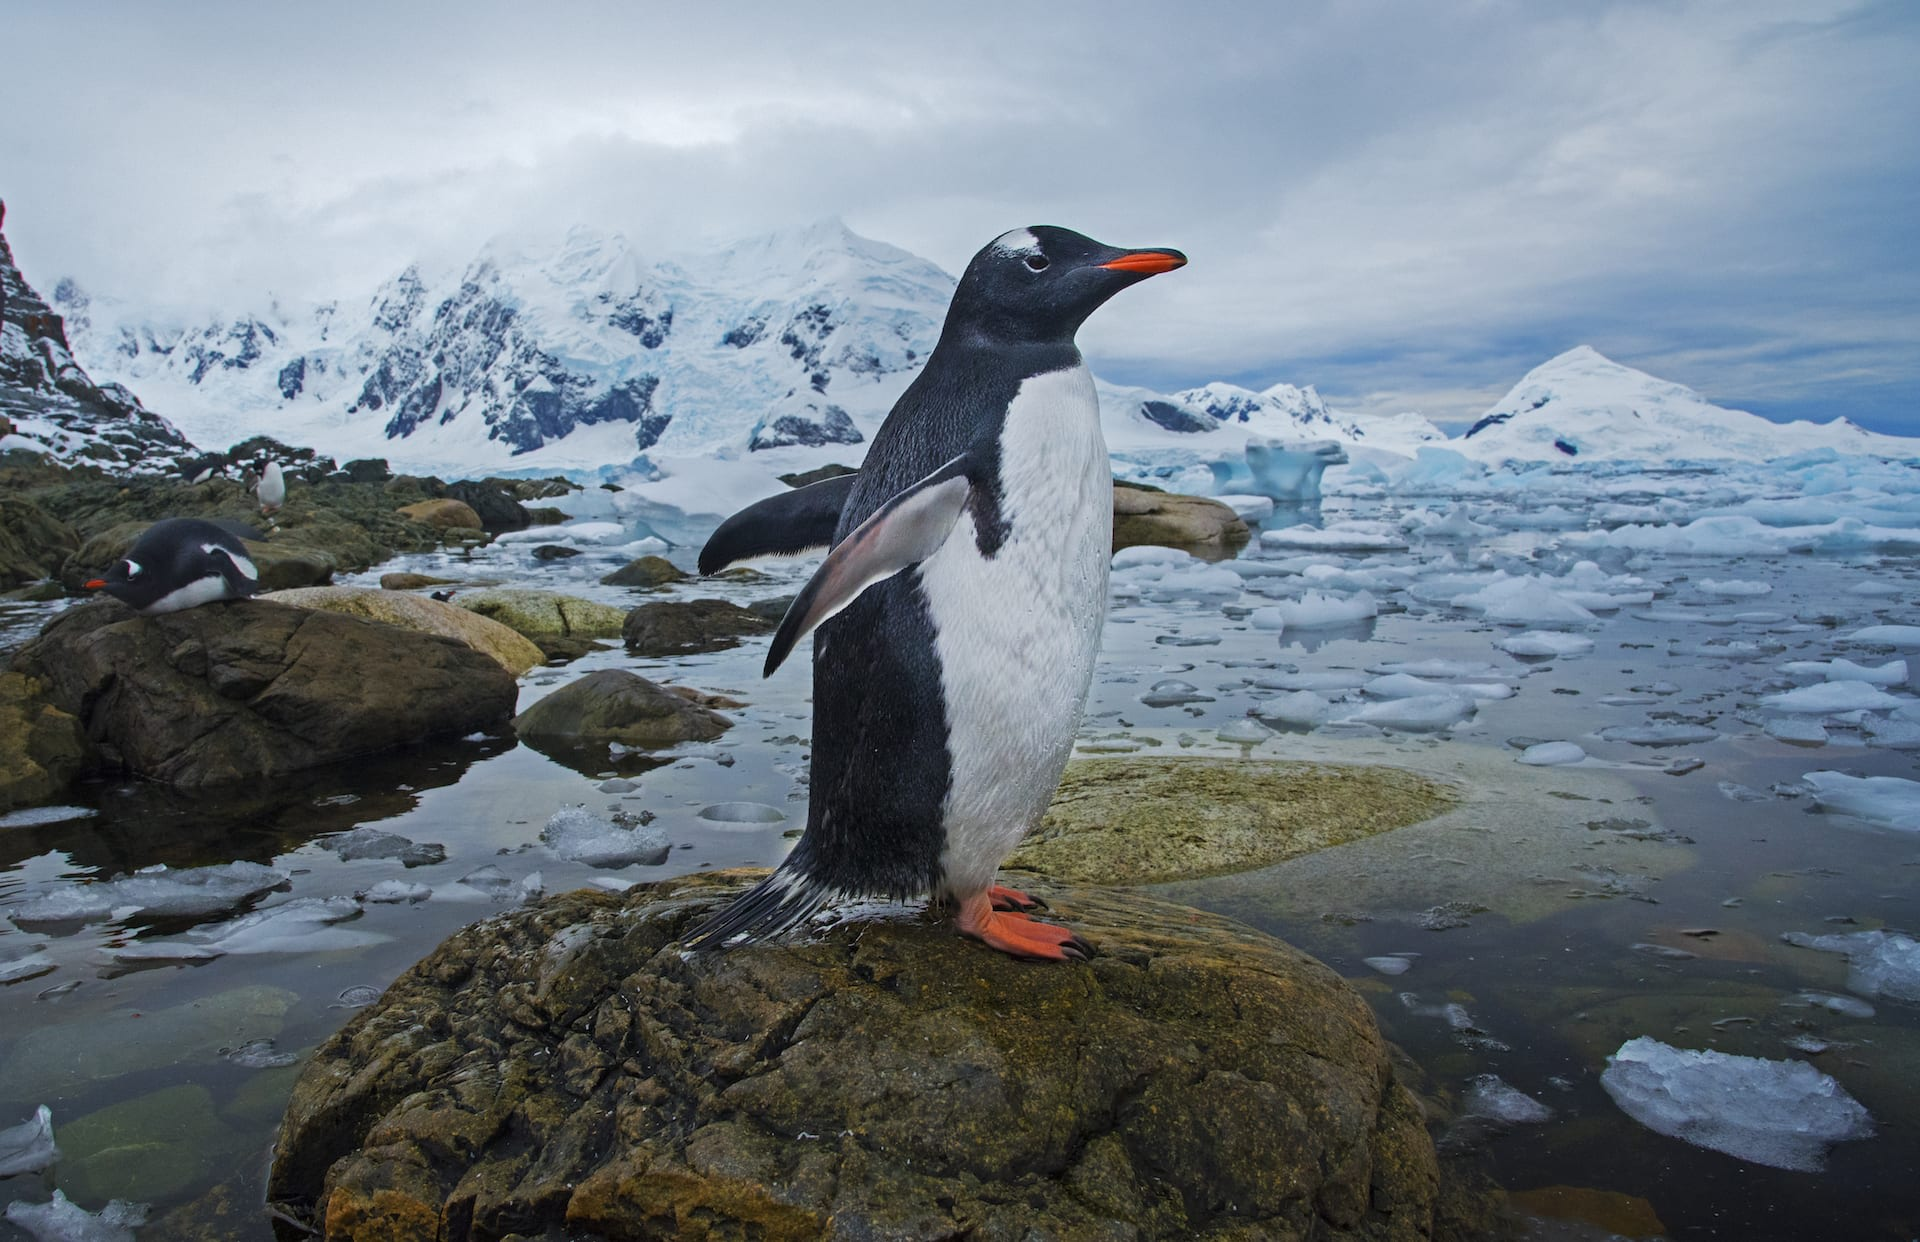 The gentoo penguins on the other hand, are quite small, and live in large colonies in the Antarctic Peninsula. Colony sizes vary from a few dozen members to groups that comprise thousands of gentoos. Both females and males are passionate parents and spend considerable time building nests out of moss, feathers, and stones for their eggs.